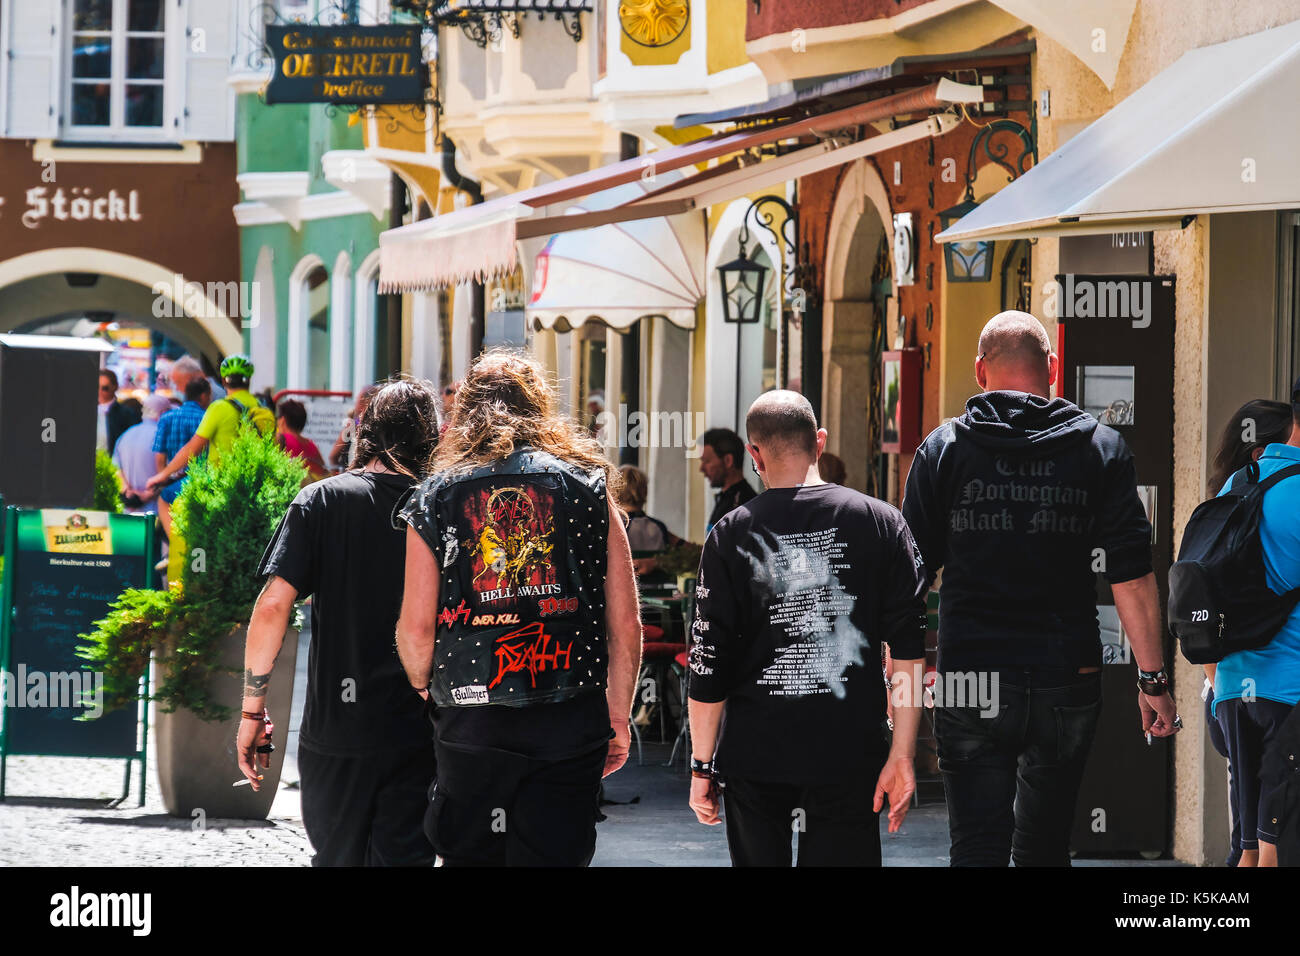 Wacken, Germany, Aug 13 2017: Heavy Metal fans, metalheads walk in the street seen from behind. Alternative music lifestyle - Stock Image